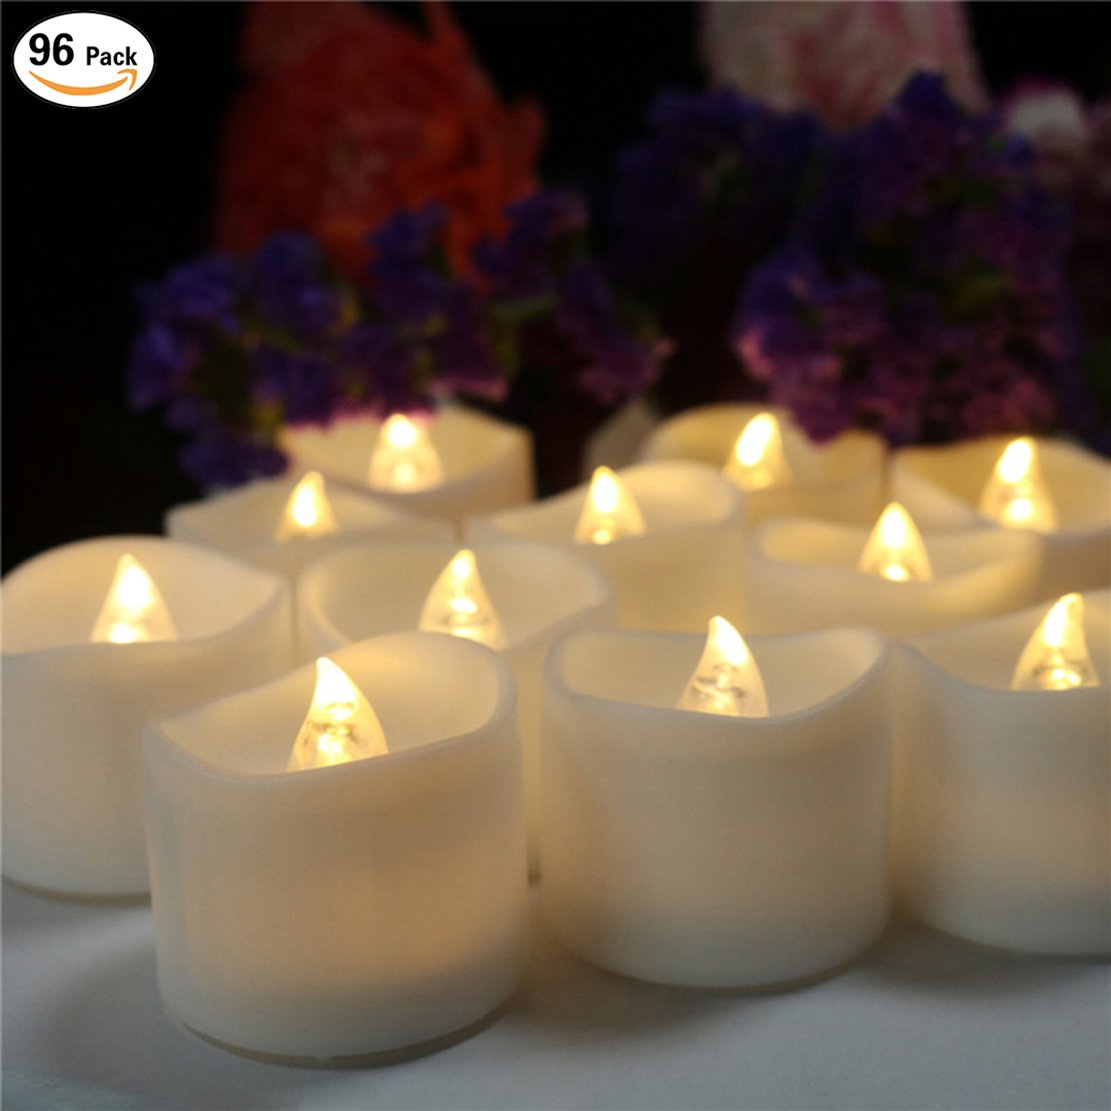 200 Hours Led Mini Tea Light with Timer (6 Hrs On 18 Hrs Off) Flameless Warm White Flickering Fake Votive Candle Wavy Open Rustic Long Lasting Electric Timed Tealights Party Home Wedding Decor 96 PCS by Beauty Collector (Image #1)